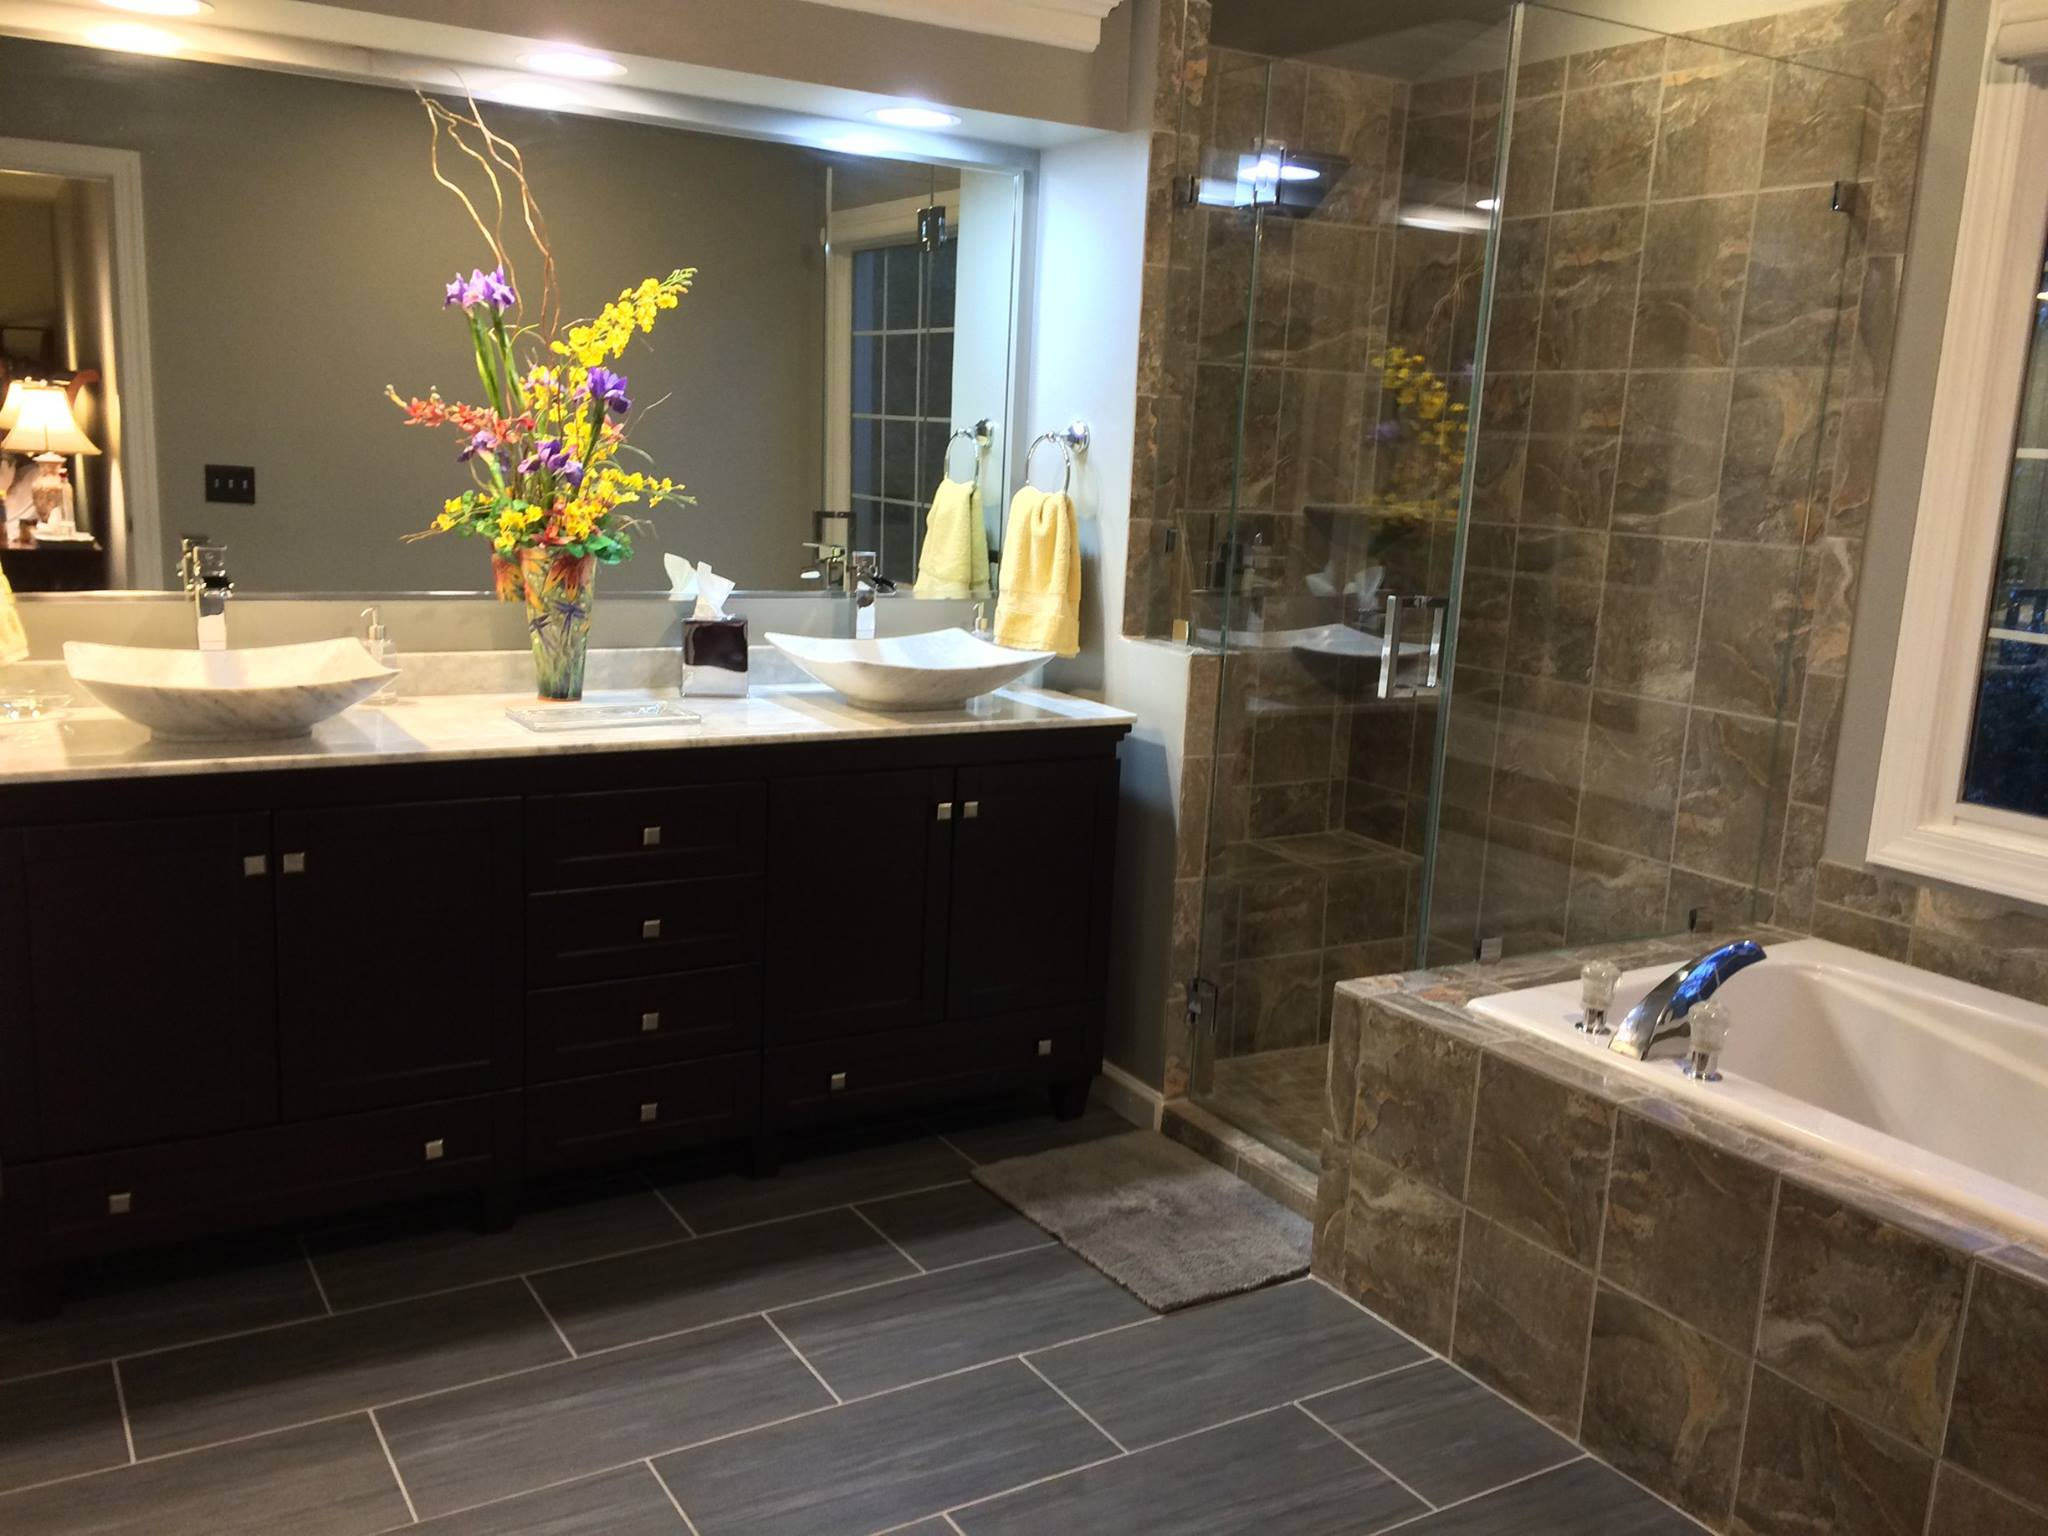 Bathroom remodel after photo